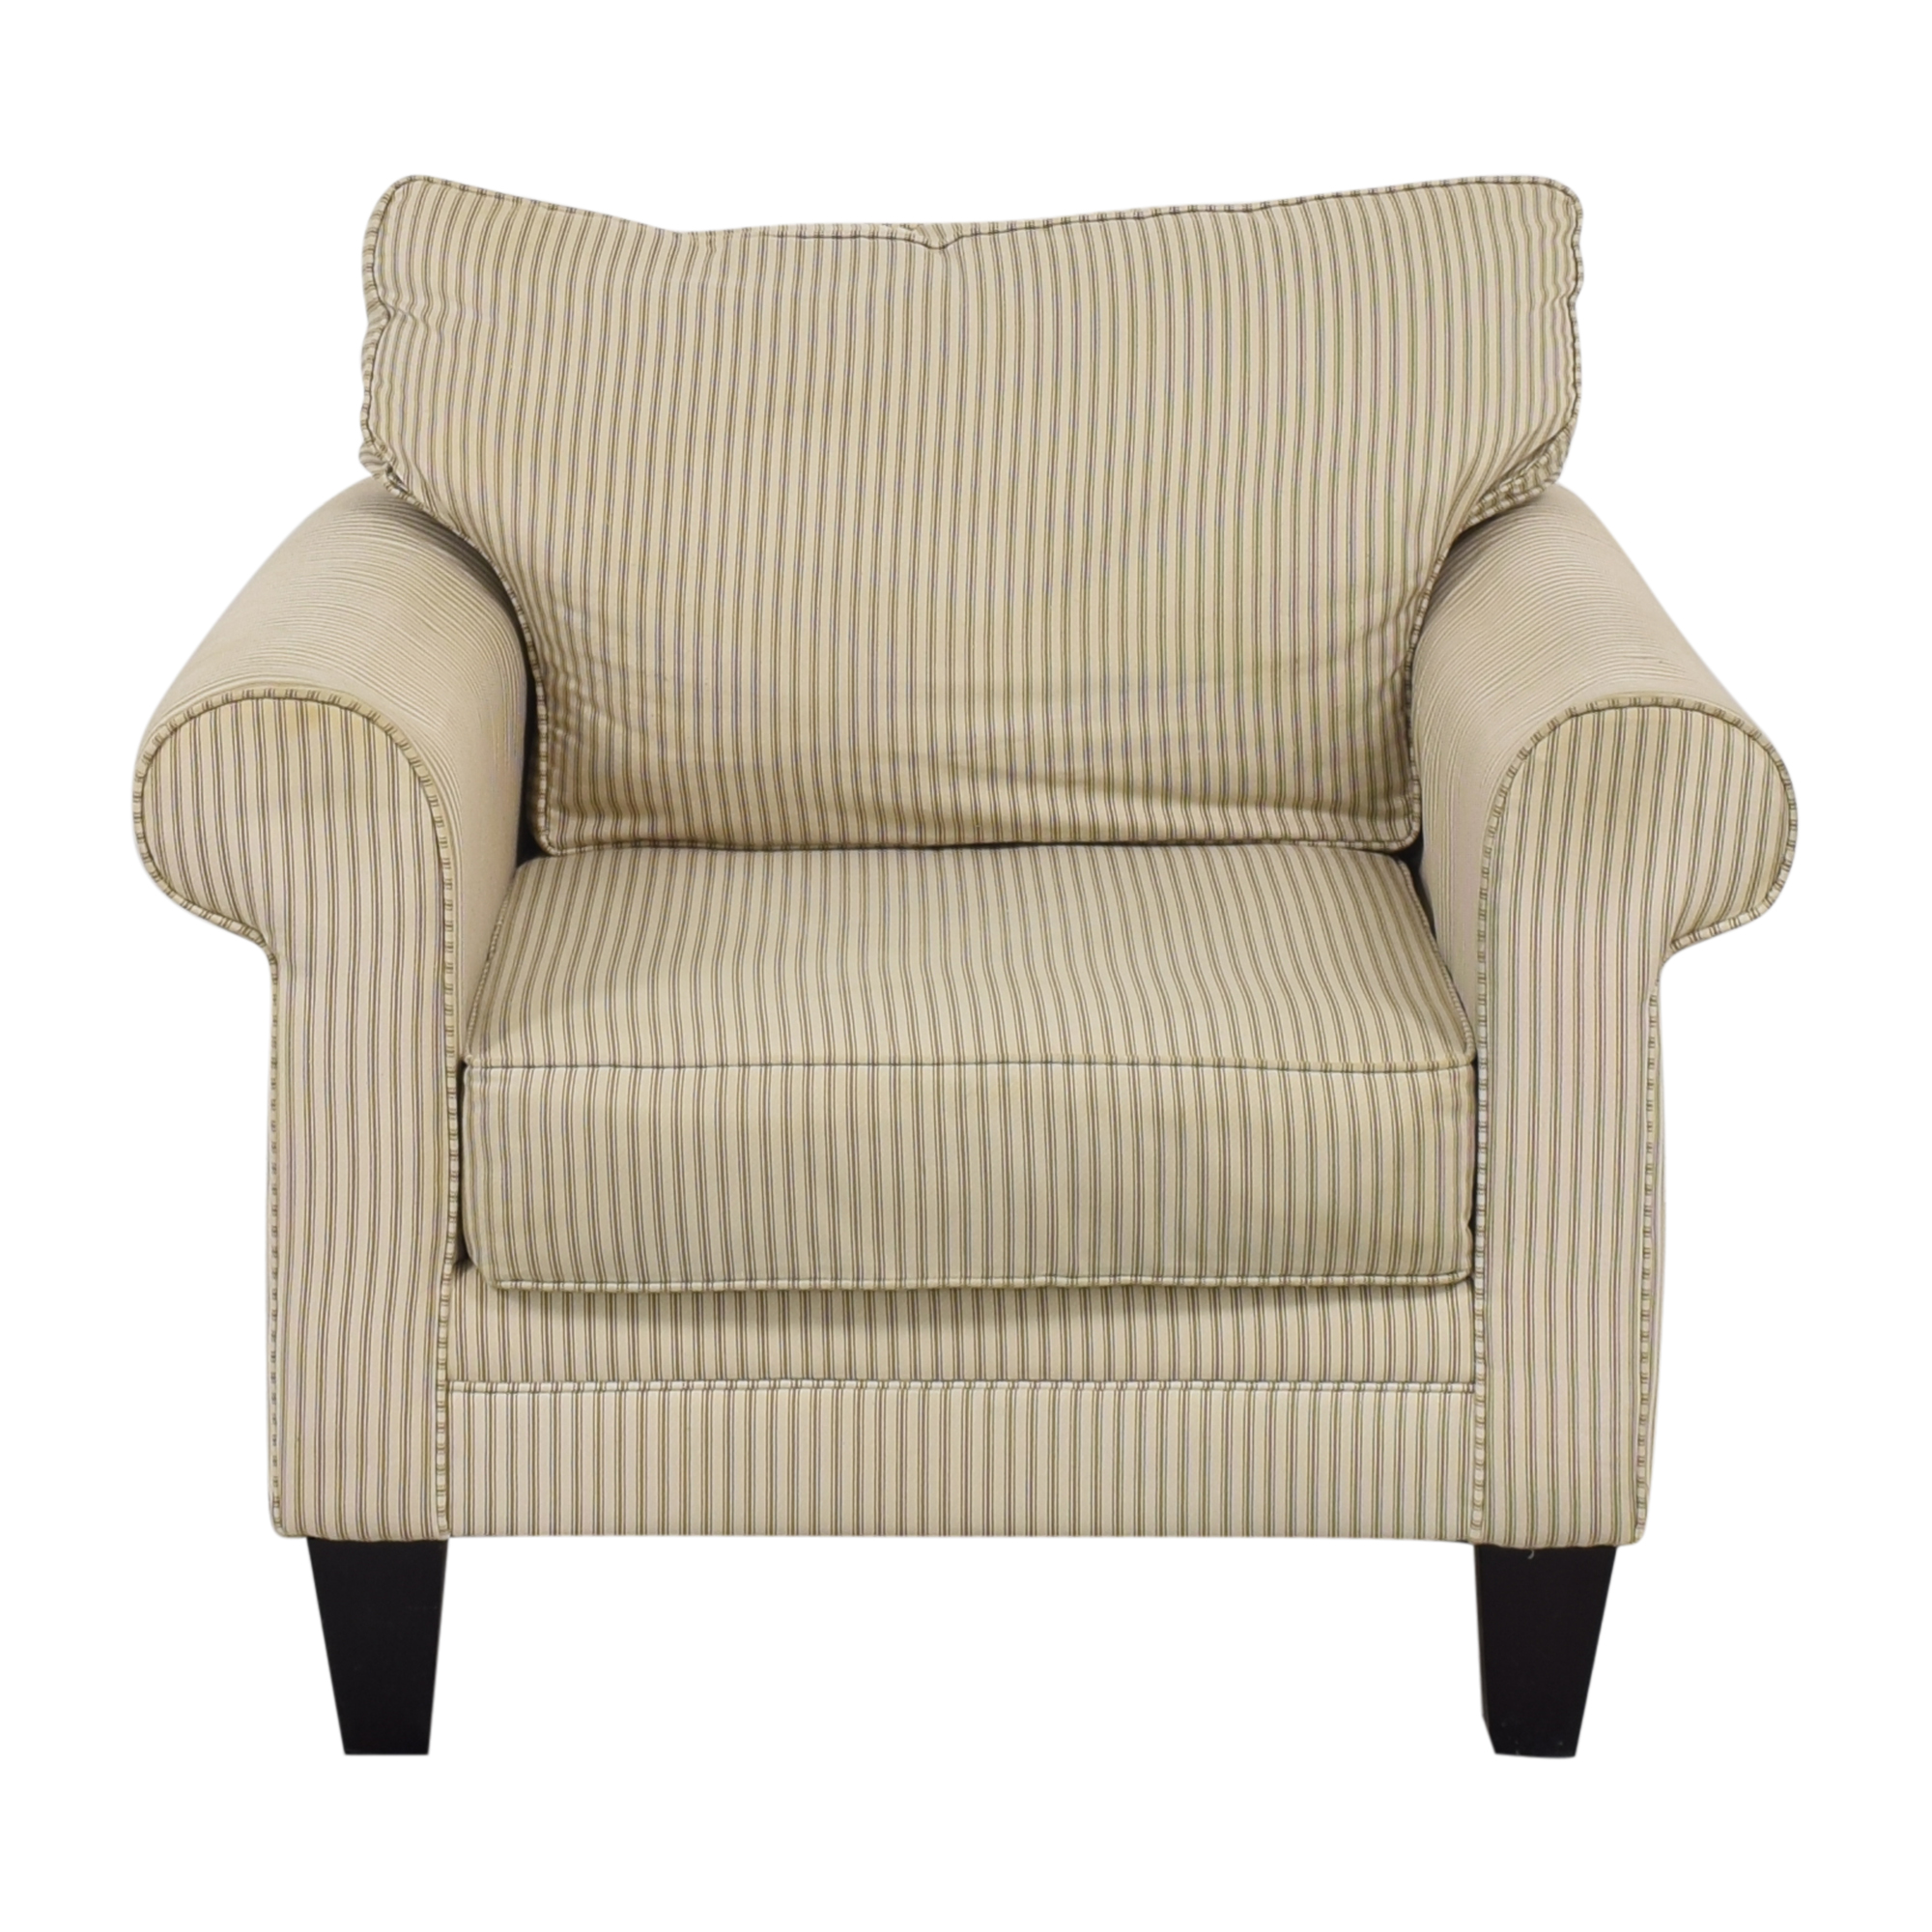 Raymour & Flanigan Raymour & Flanigan Roll Arm Chair Accent Chairs